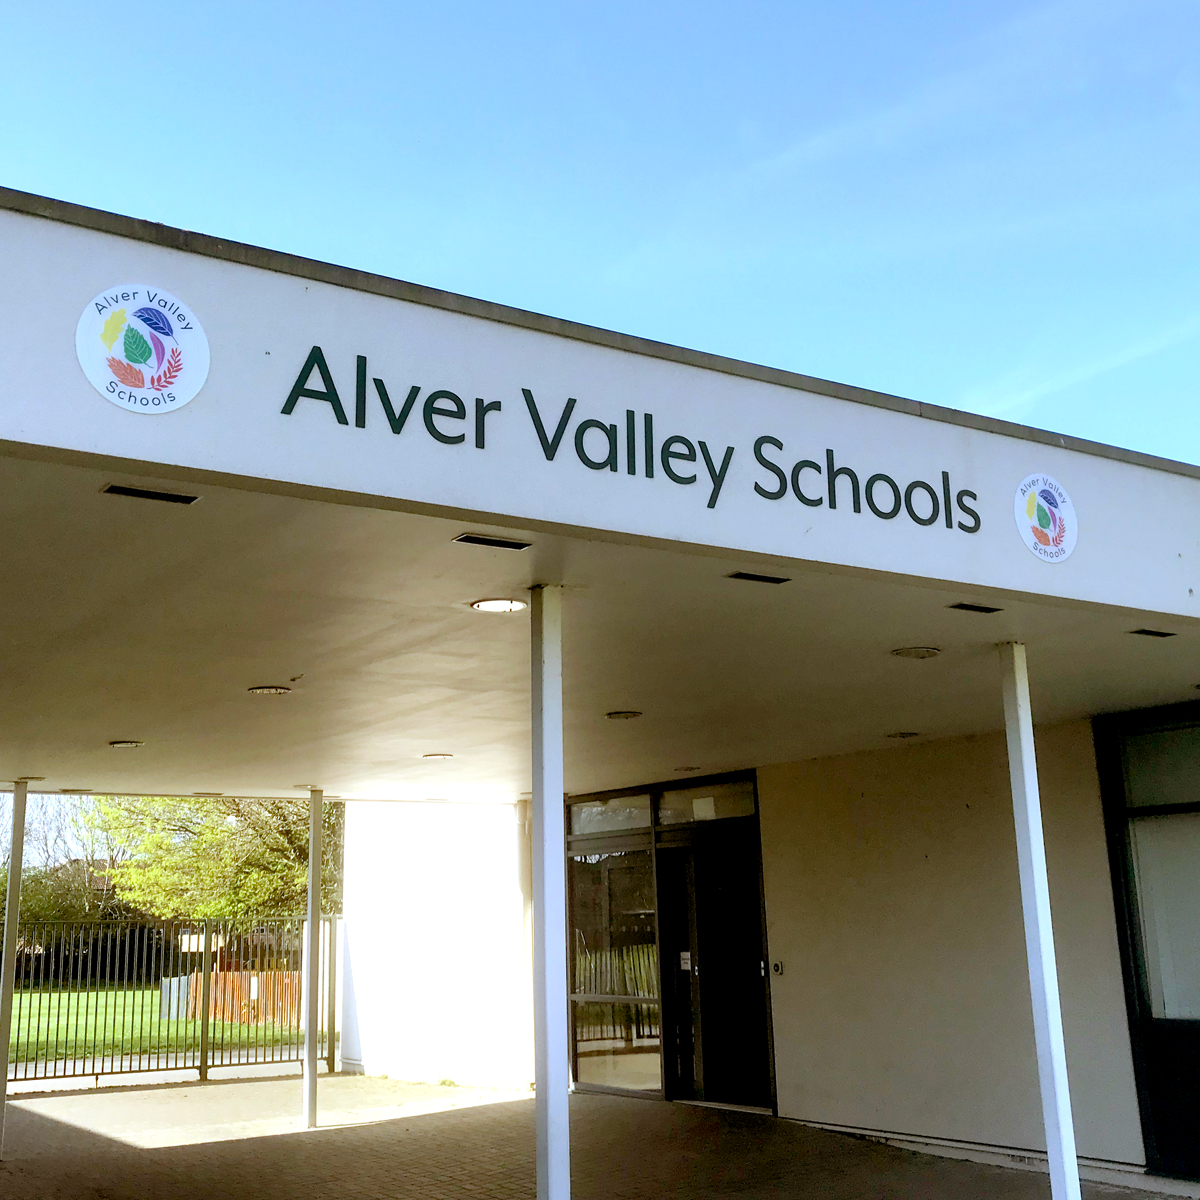 Logo and front signage for Alver Valley Schools, Gosport